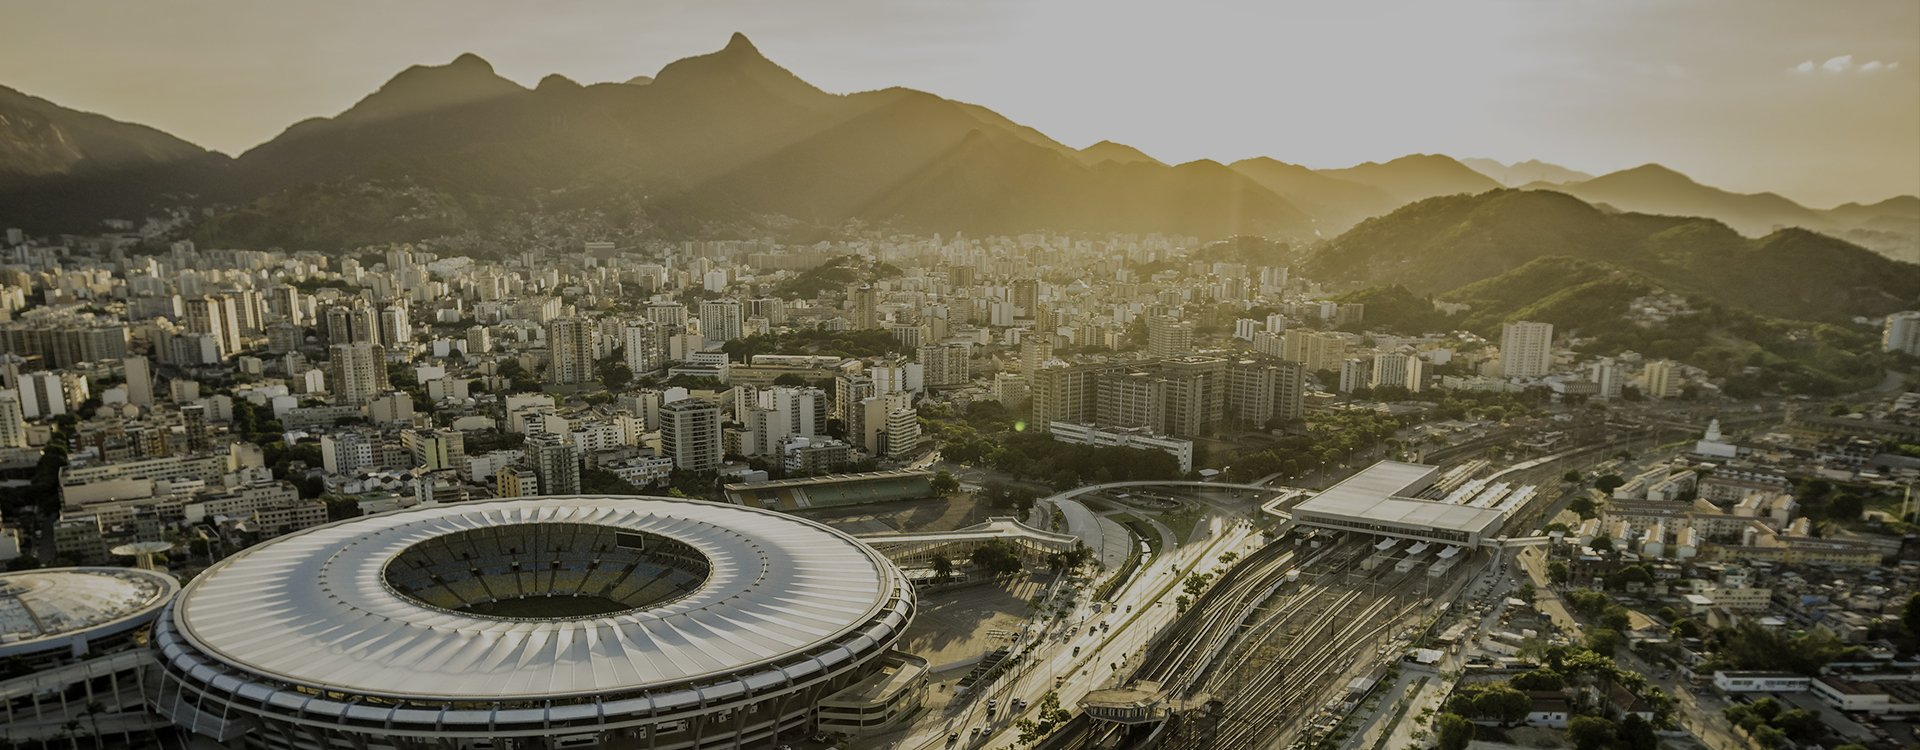 Technogym Presence in Rio for the Olympic Games 2016